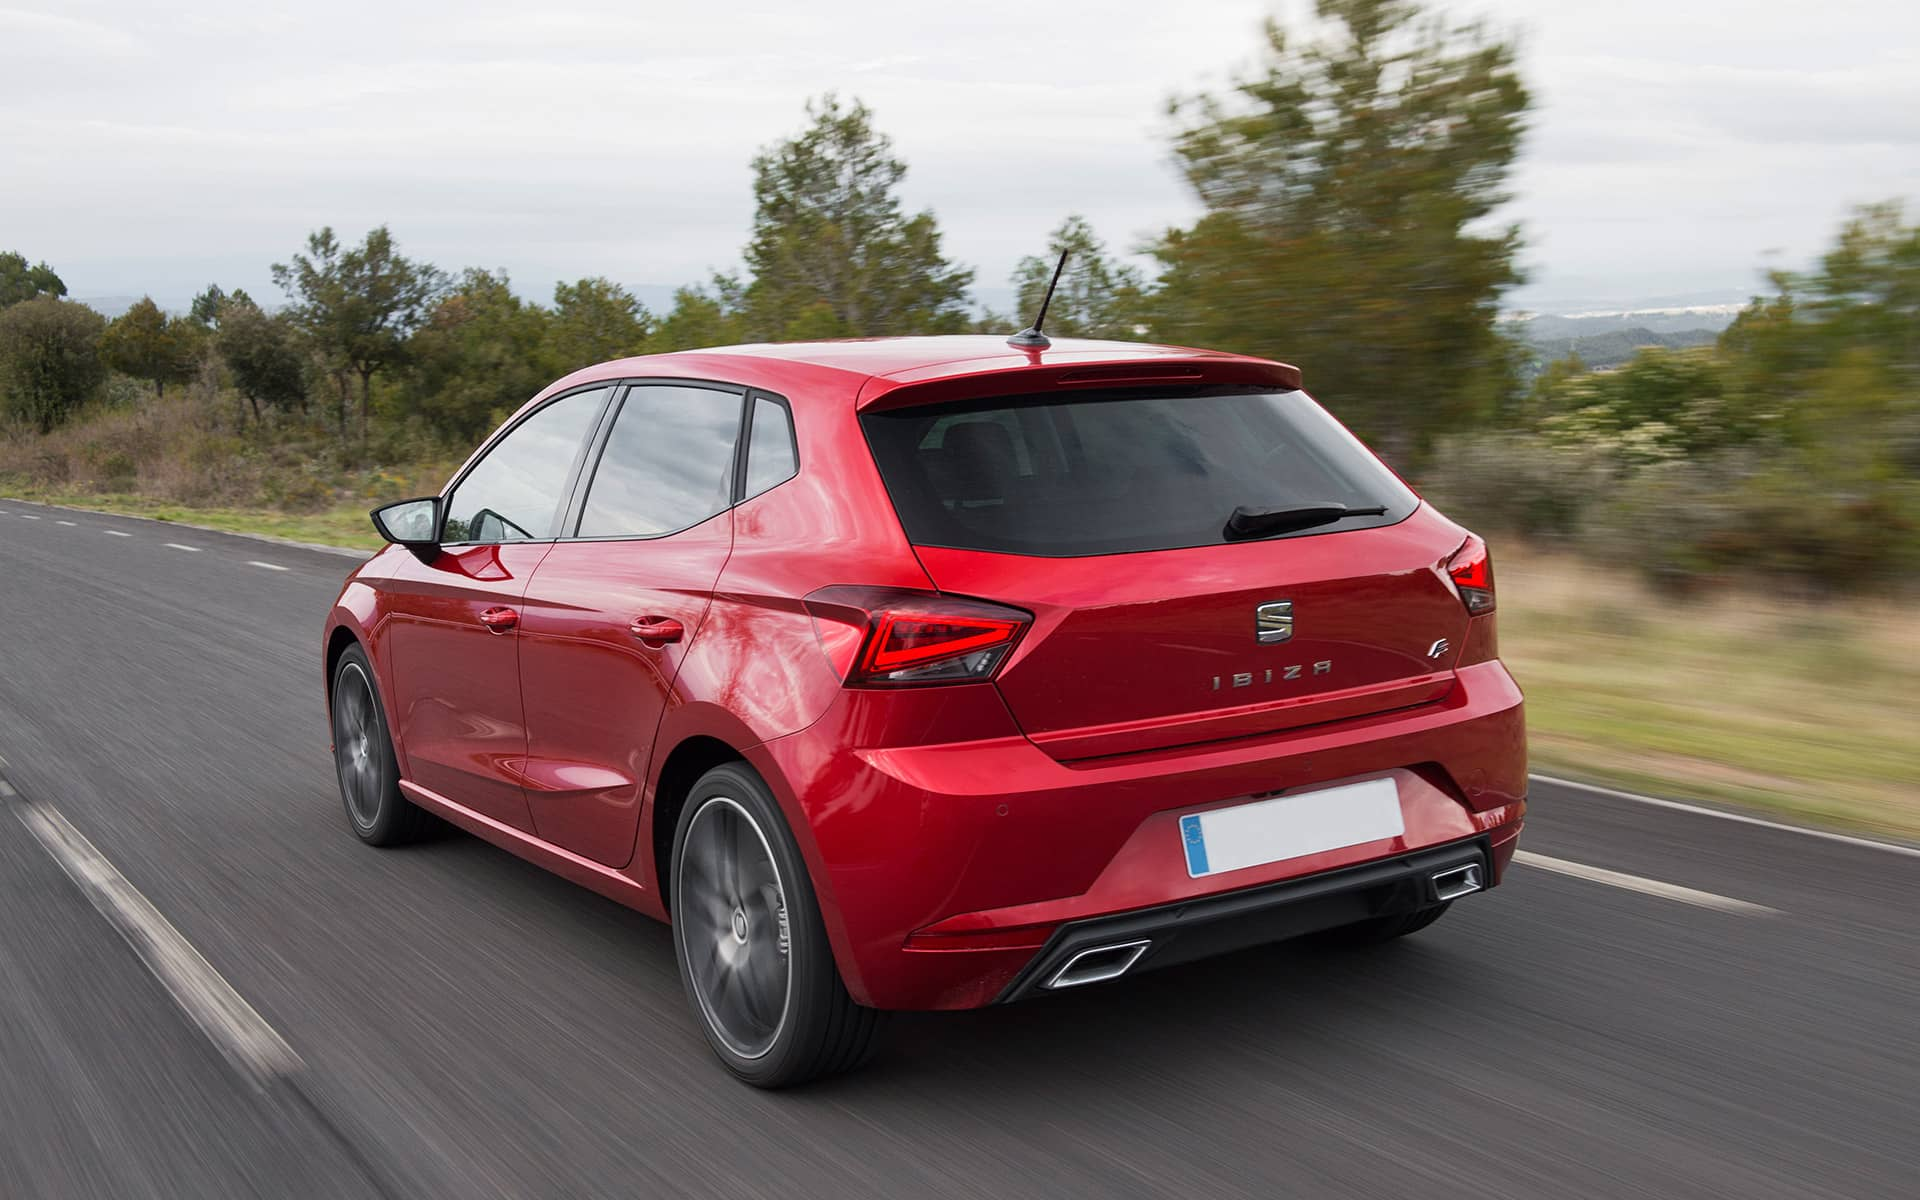 Renting coches Seat Ibiza